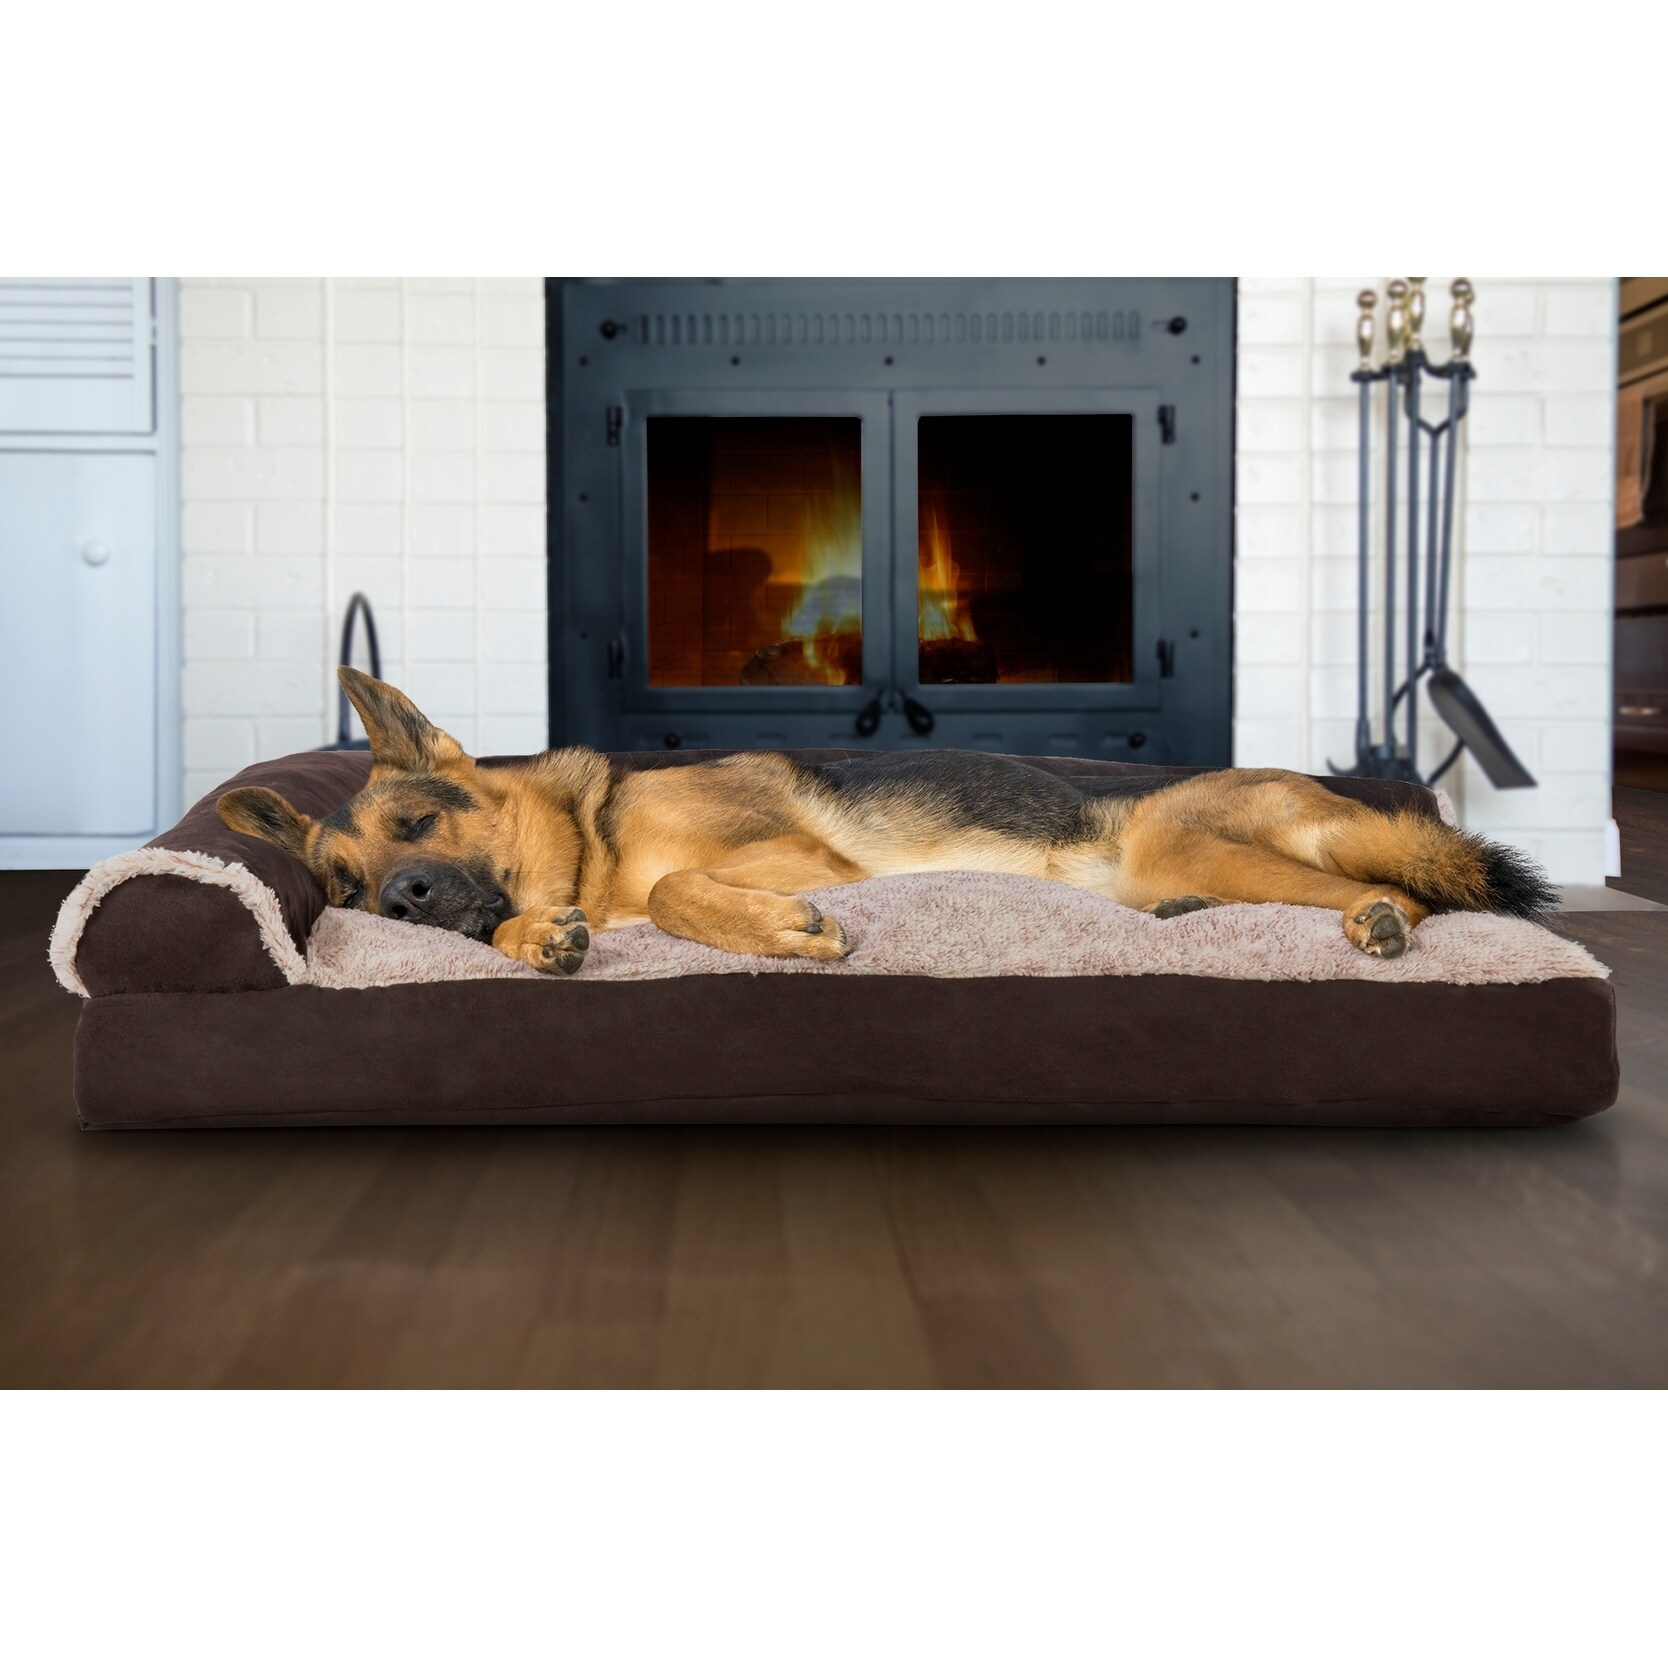 Dog Beds Blankets Find Great Dog Supplies Deals Shopping